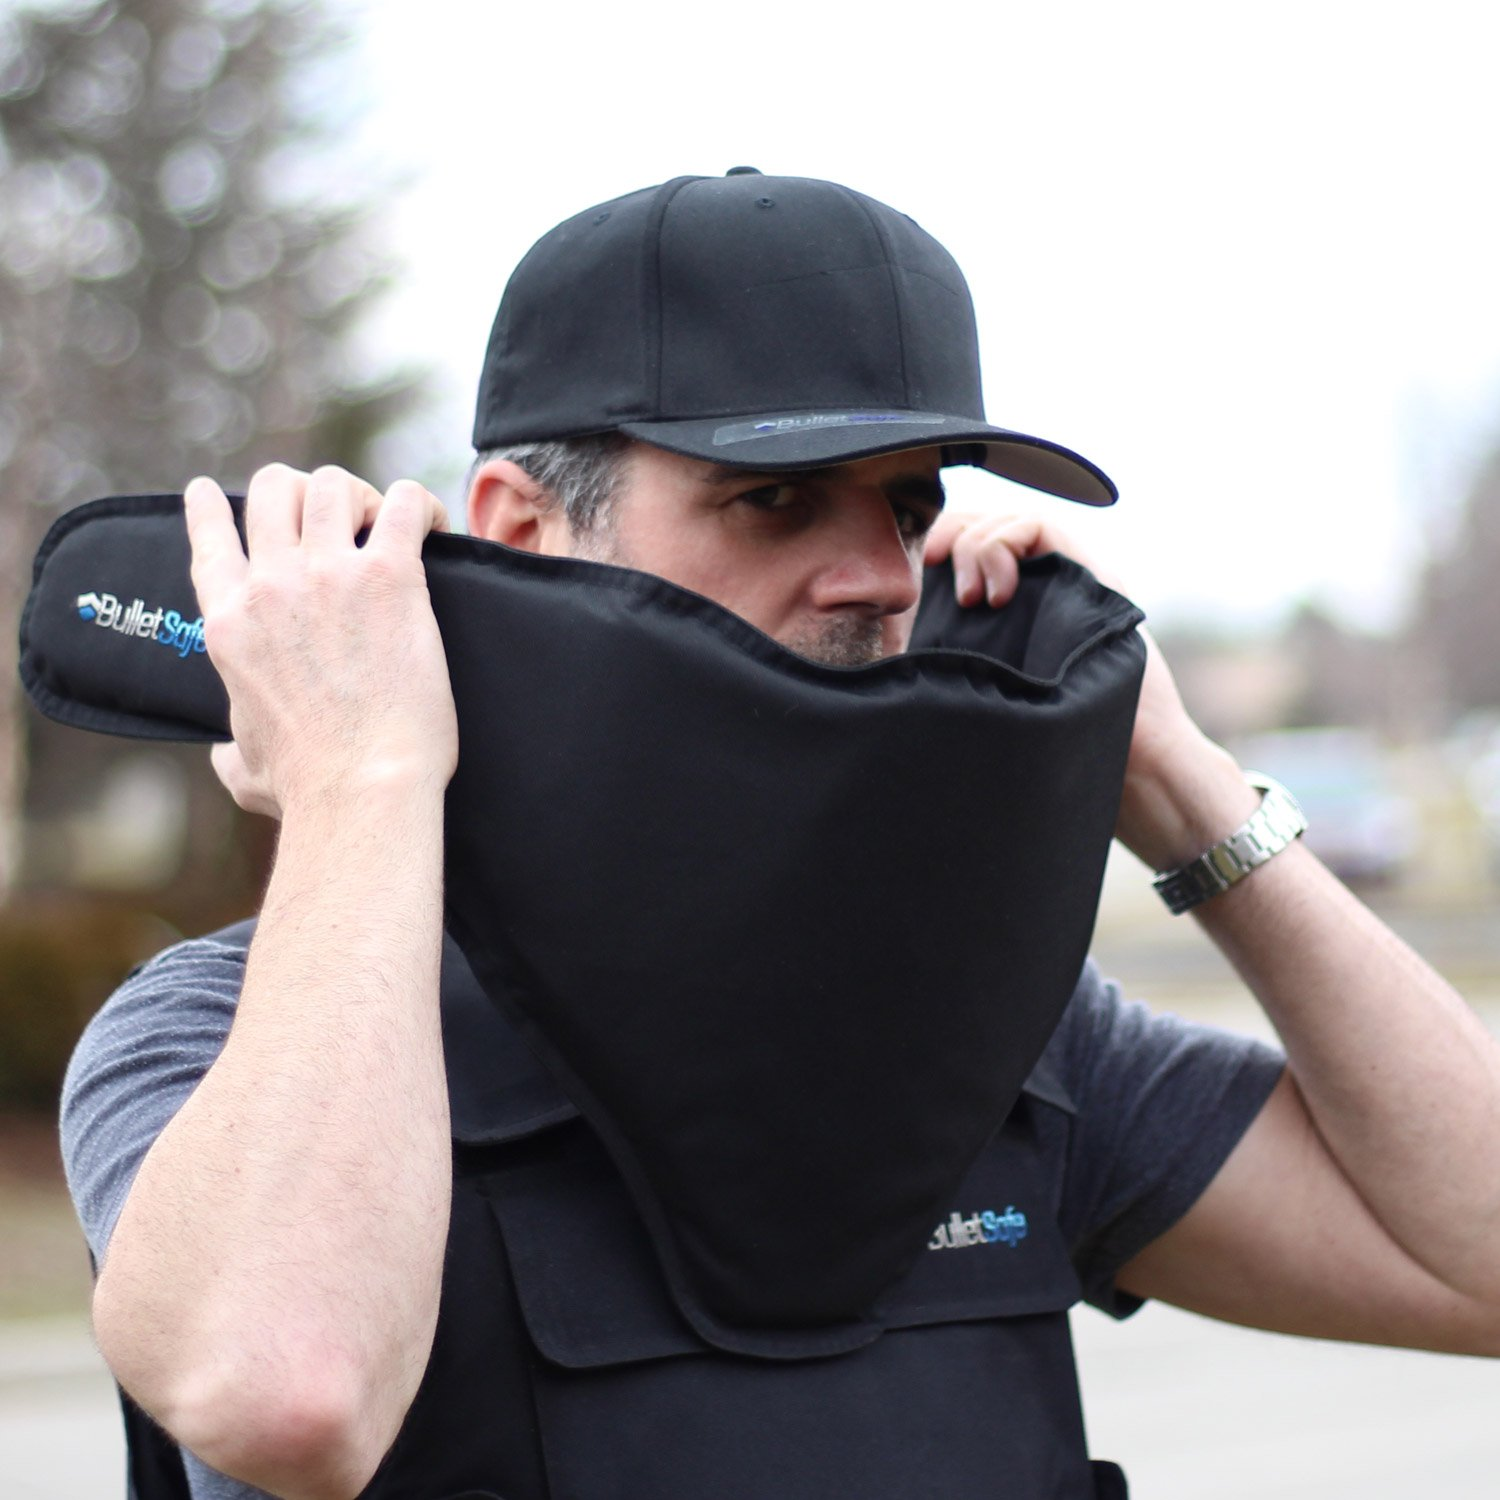 A man in a cap putting a bulletproof bandana around his face and neck